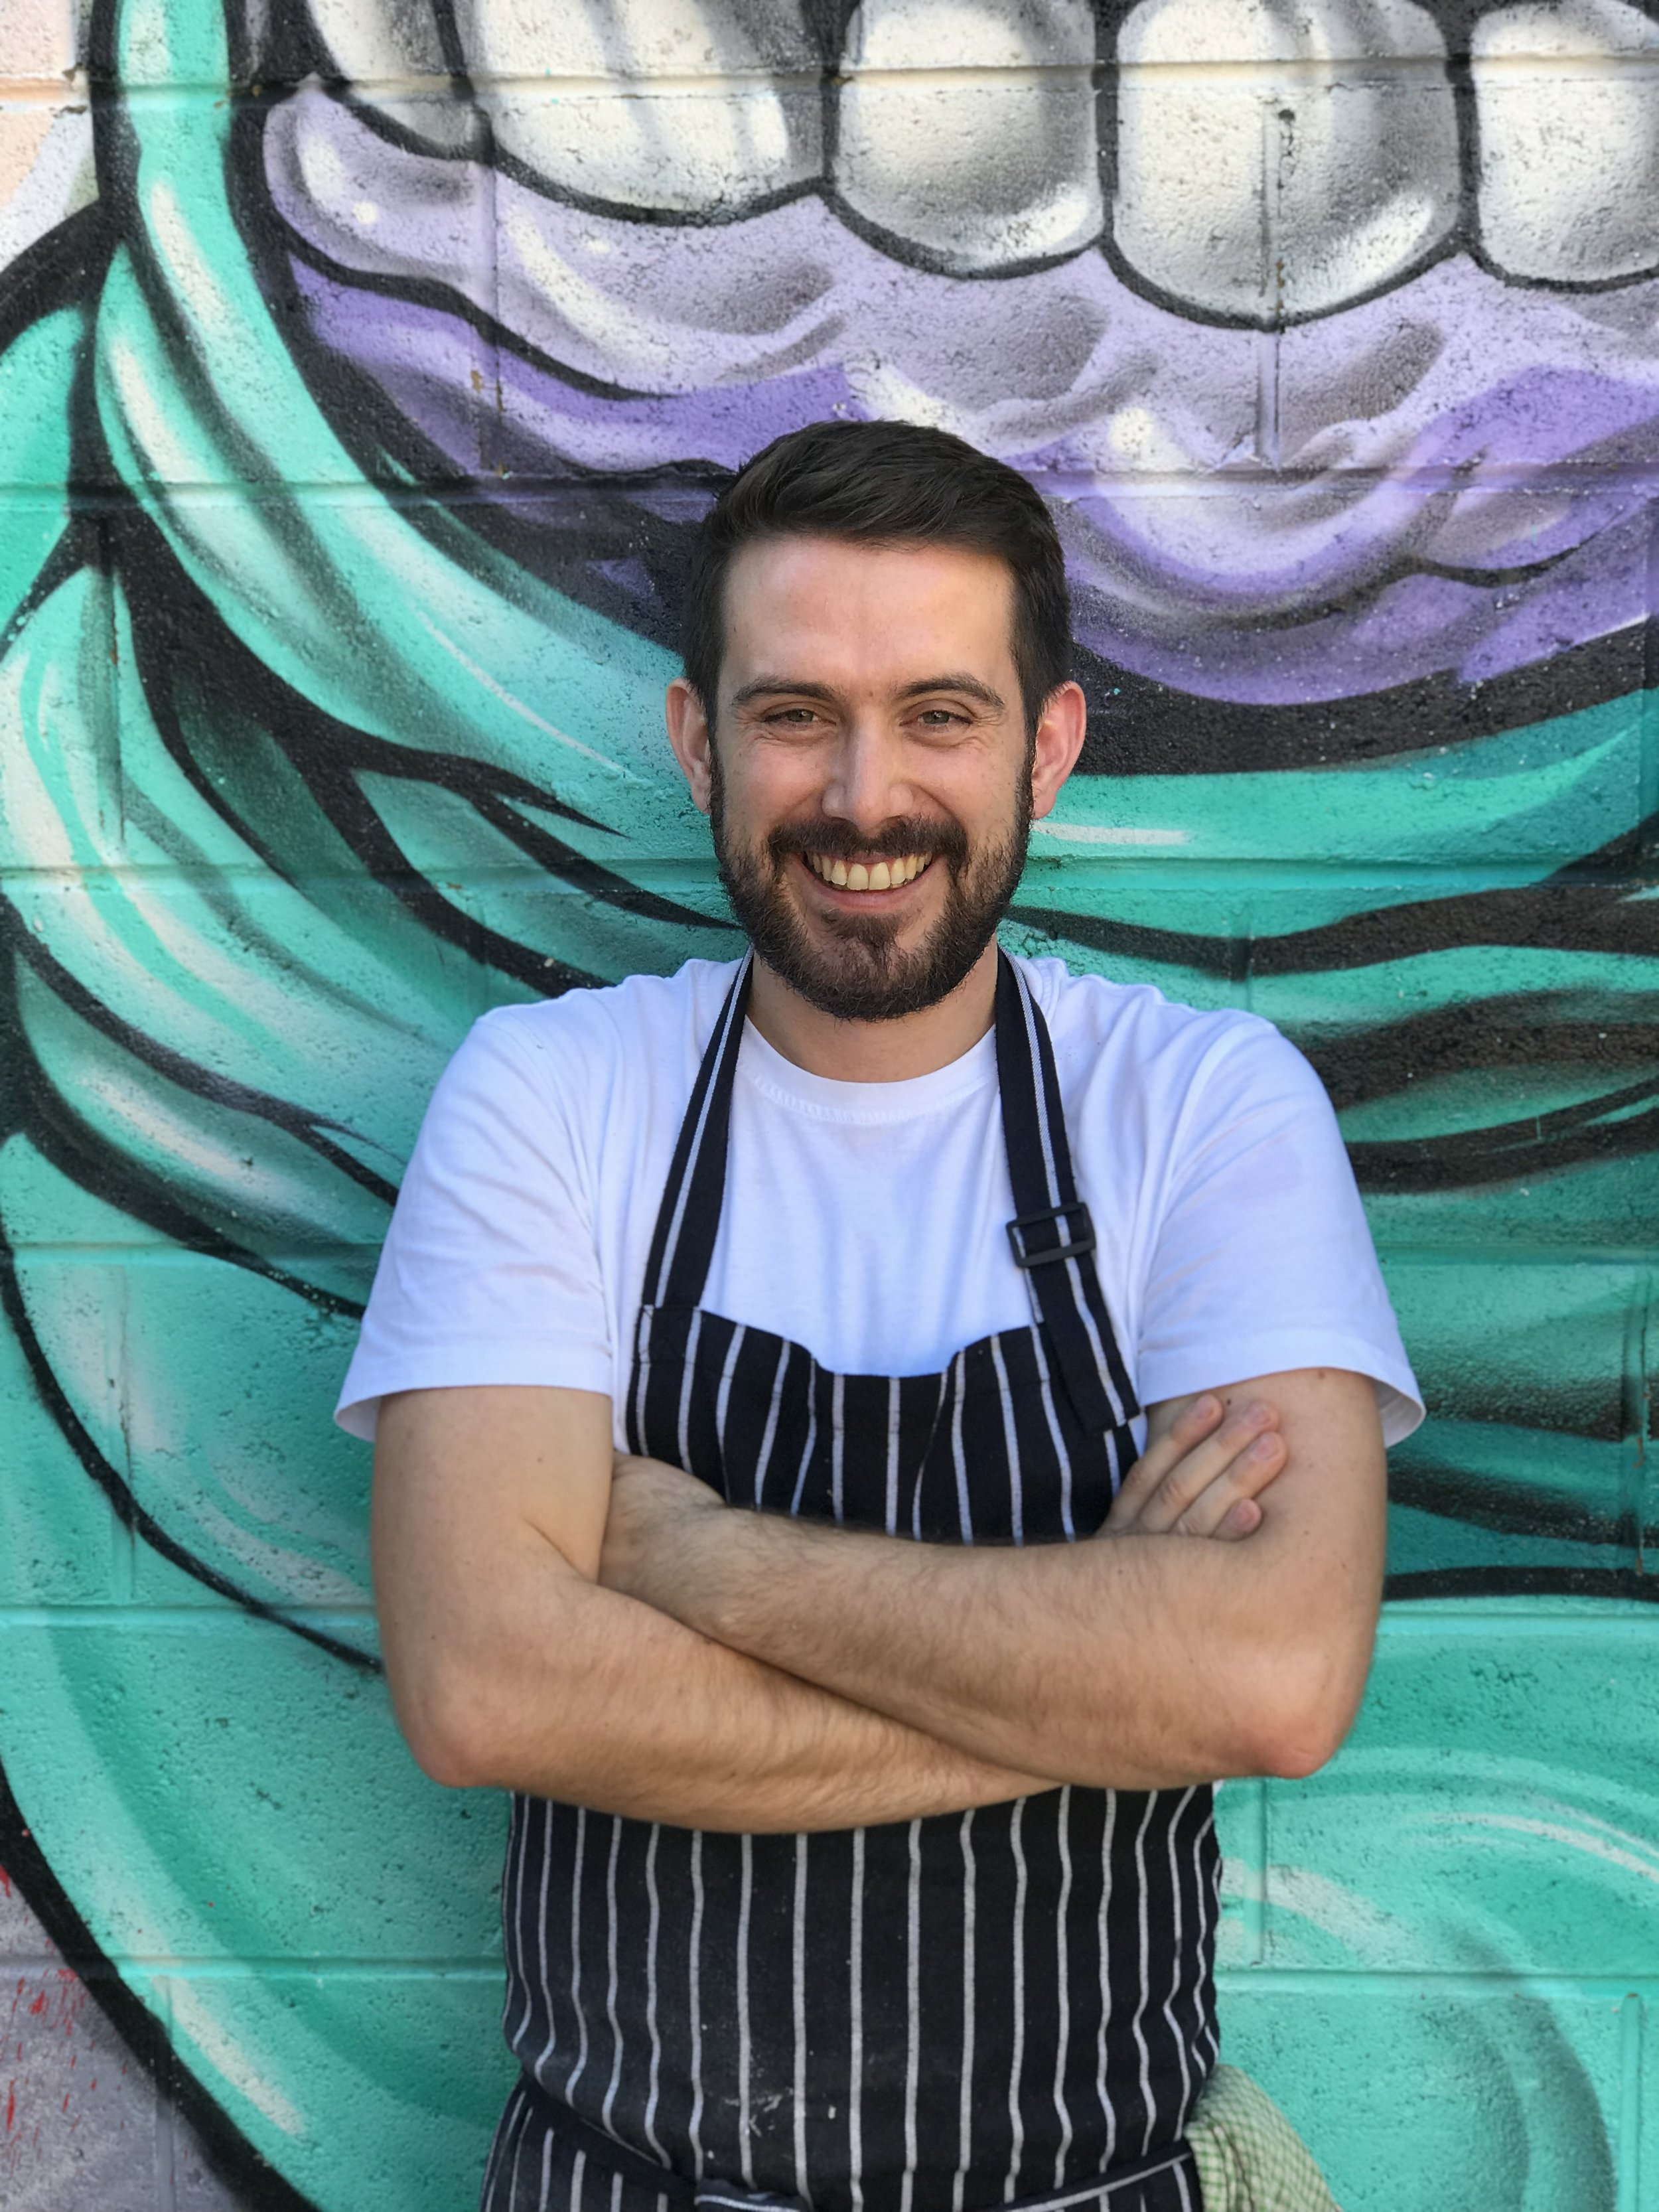 Luke Hagel is a chef at Commonfolk, expat Londoner,avid Gunners supporter and a warrior against waste.